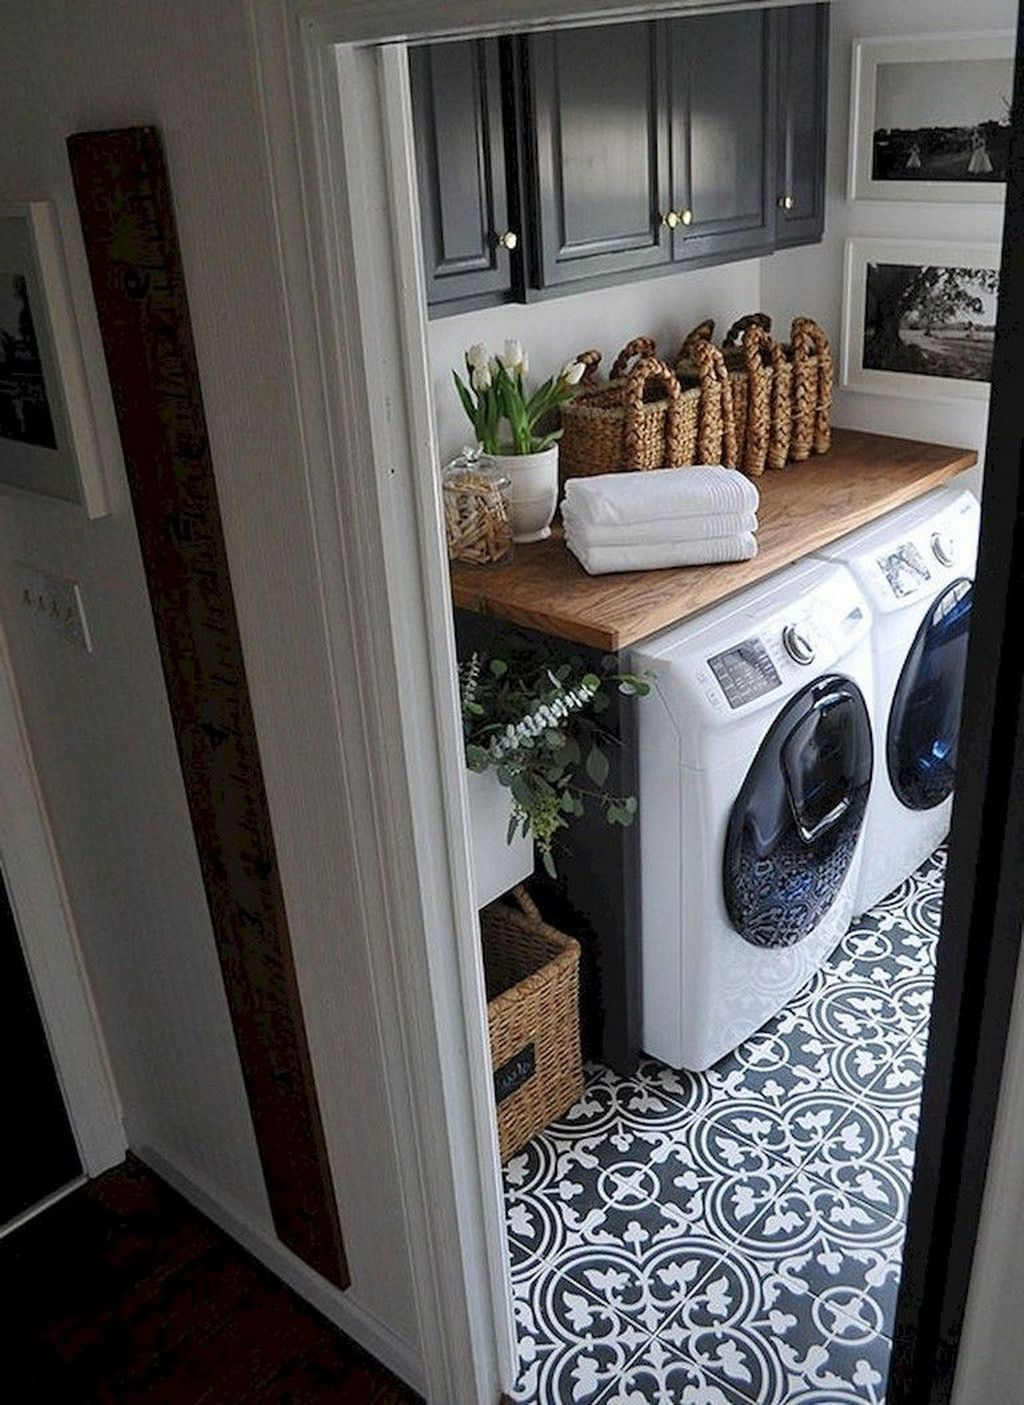 47 Beautiful Laundry Room Tile Design With Images Laundry Room Tile Dream Laundry Room Room Tiles Design